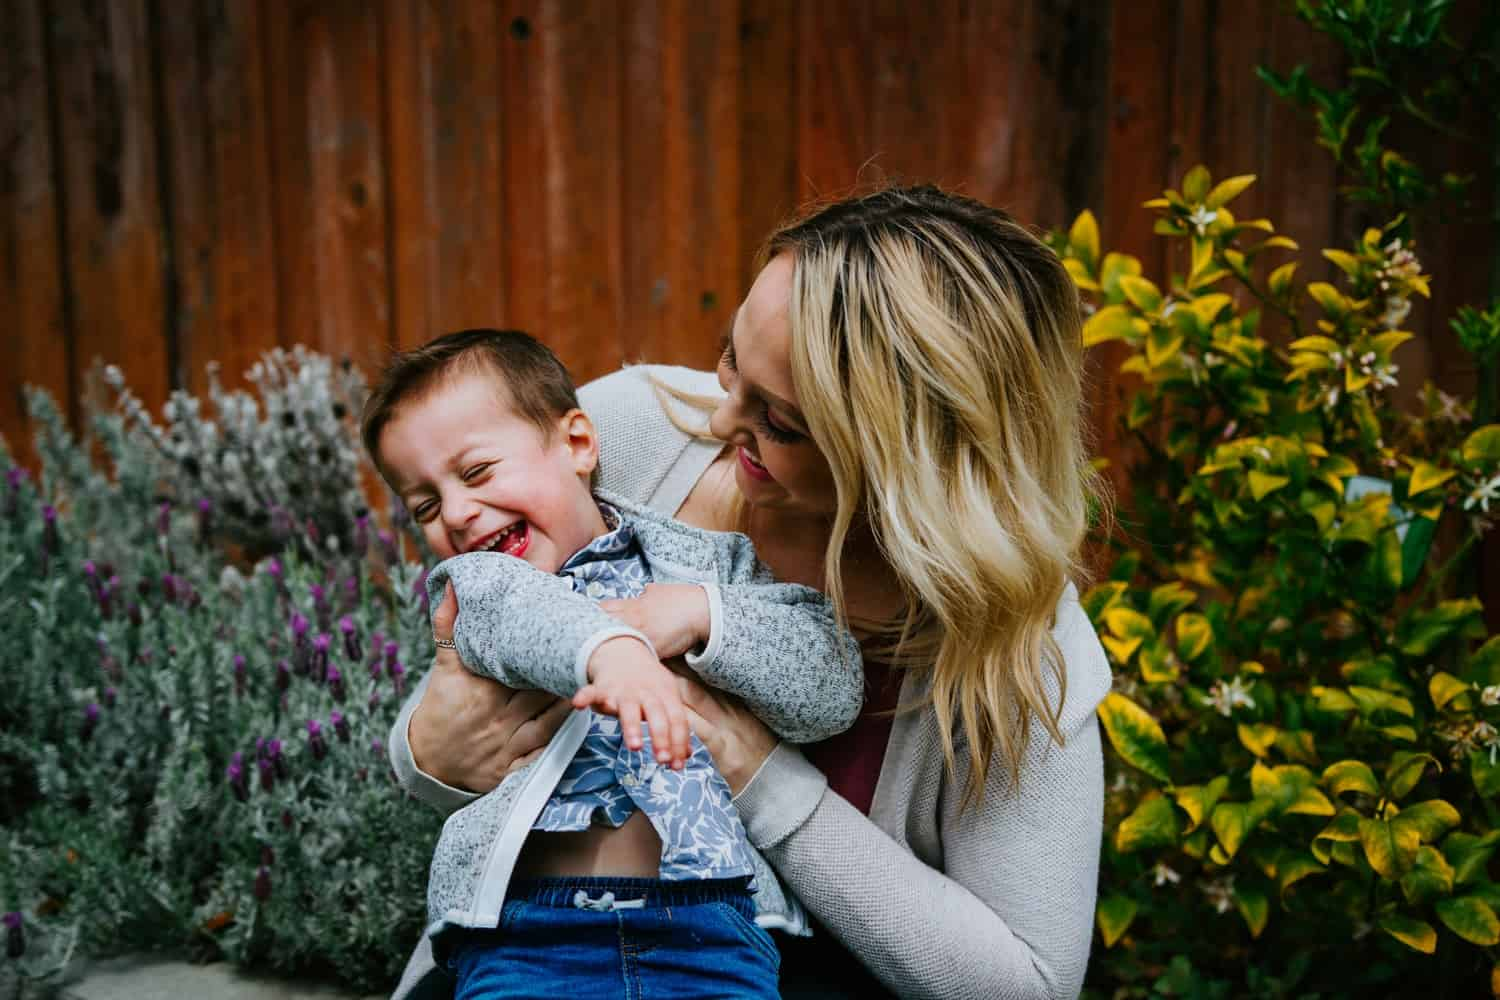 How to Be a Better Parent: 11 Things to Remember